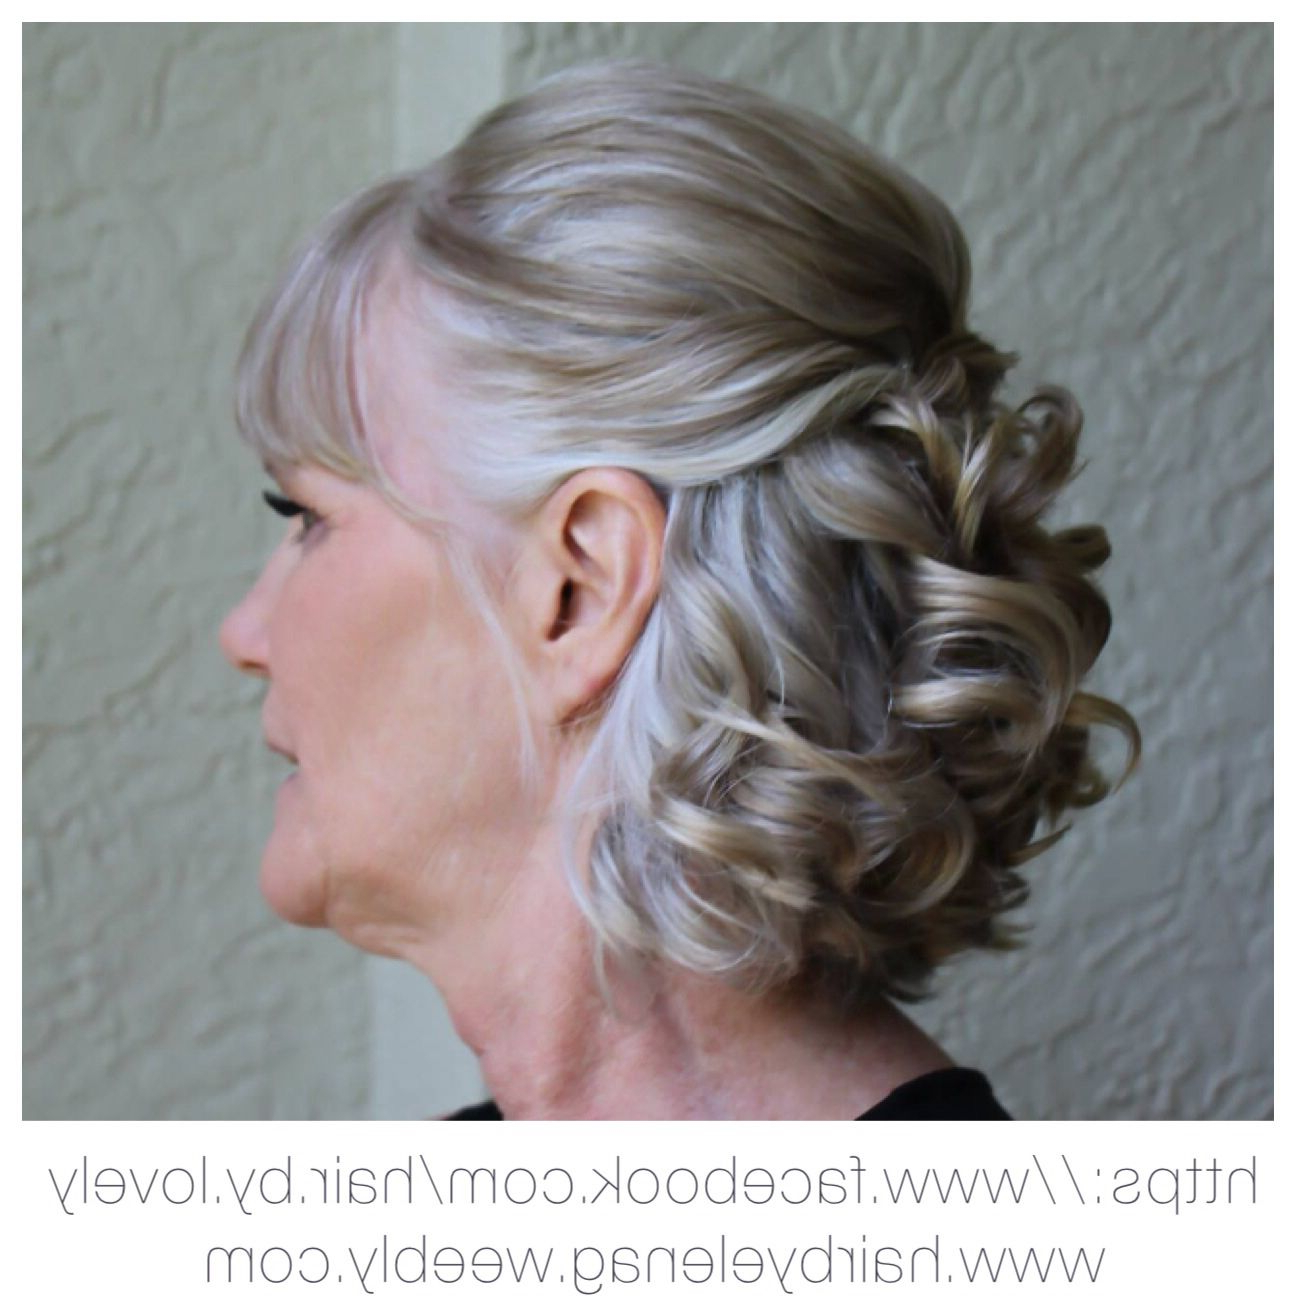 Famous Messy Woven Updo Hairstyles For Mother Of The Bride For Pingonul Shishko On After50agehair In (View 18 of 20)